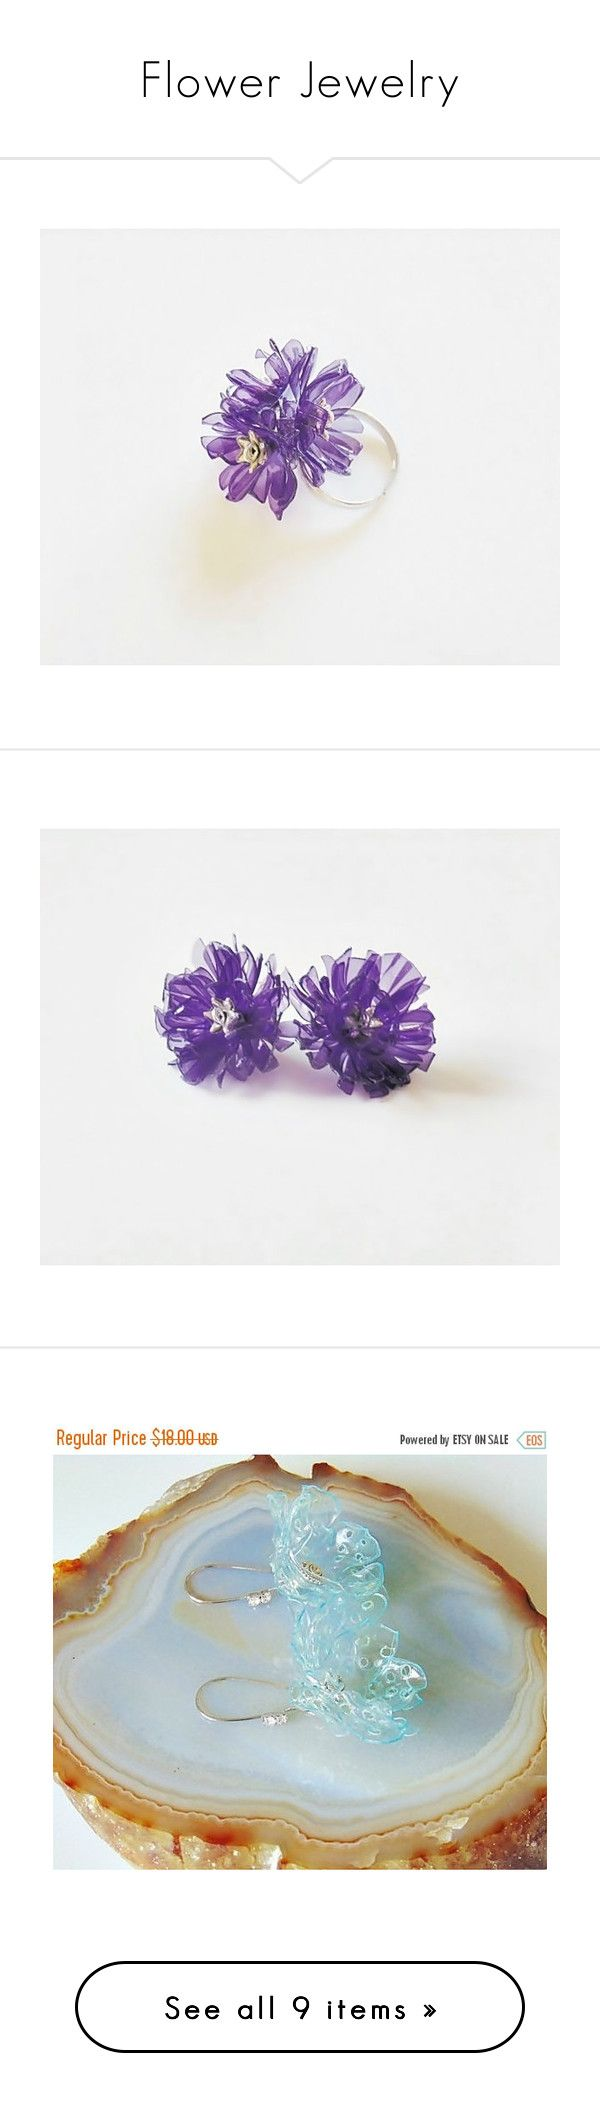 Flower Jewelry by styledonna on Polyvore featuring women's fashion, jewelry, earrings, flower jewelry, flower jewellery, long earrings, flower earrings, blossom jewelry, rings and green ring